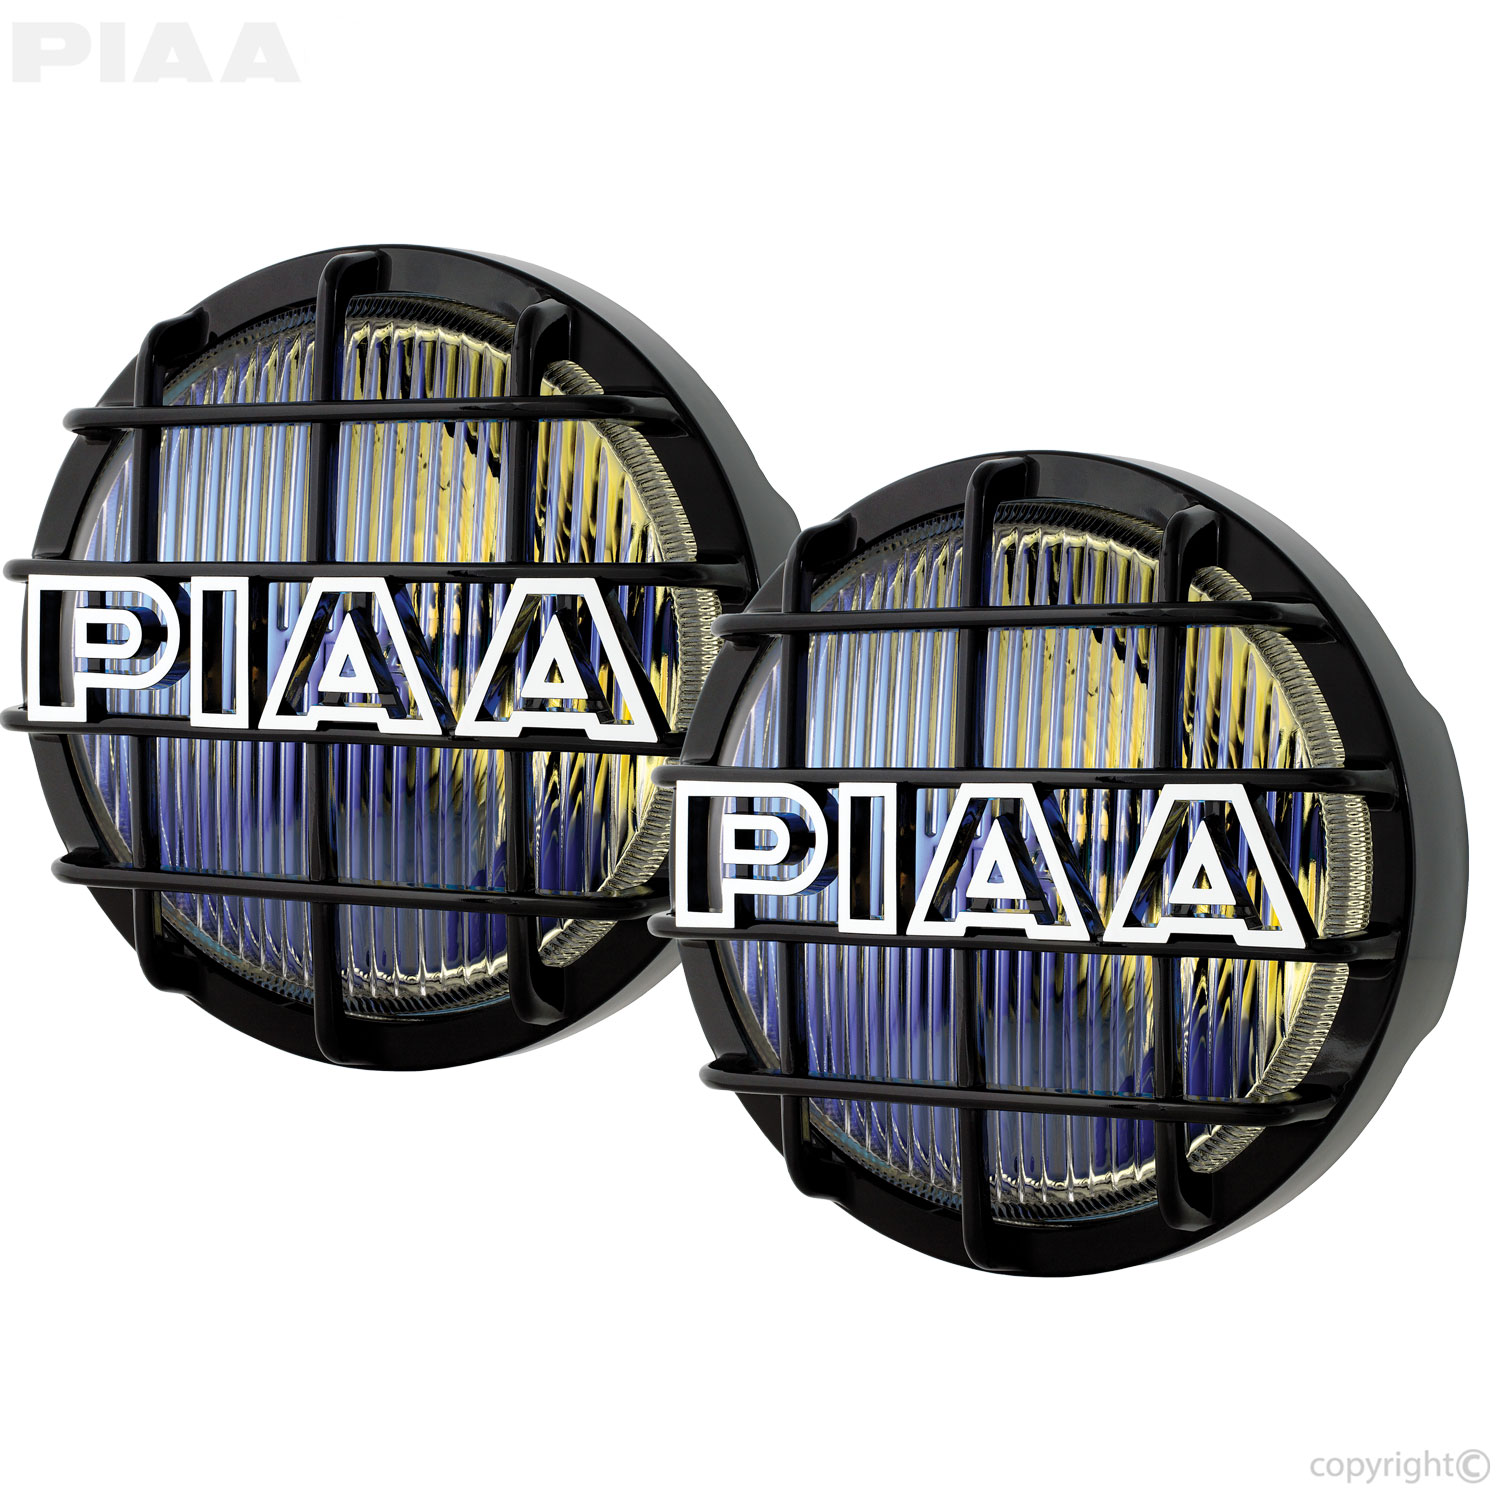 piaa 05291 520 dual hr?bw=1000&w=1000&bh=1000&h=1000 piaa 520 ion yellow fog halogen lamp kit 05291 piaa 520 wiring harness at cos-gaming.co